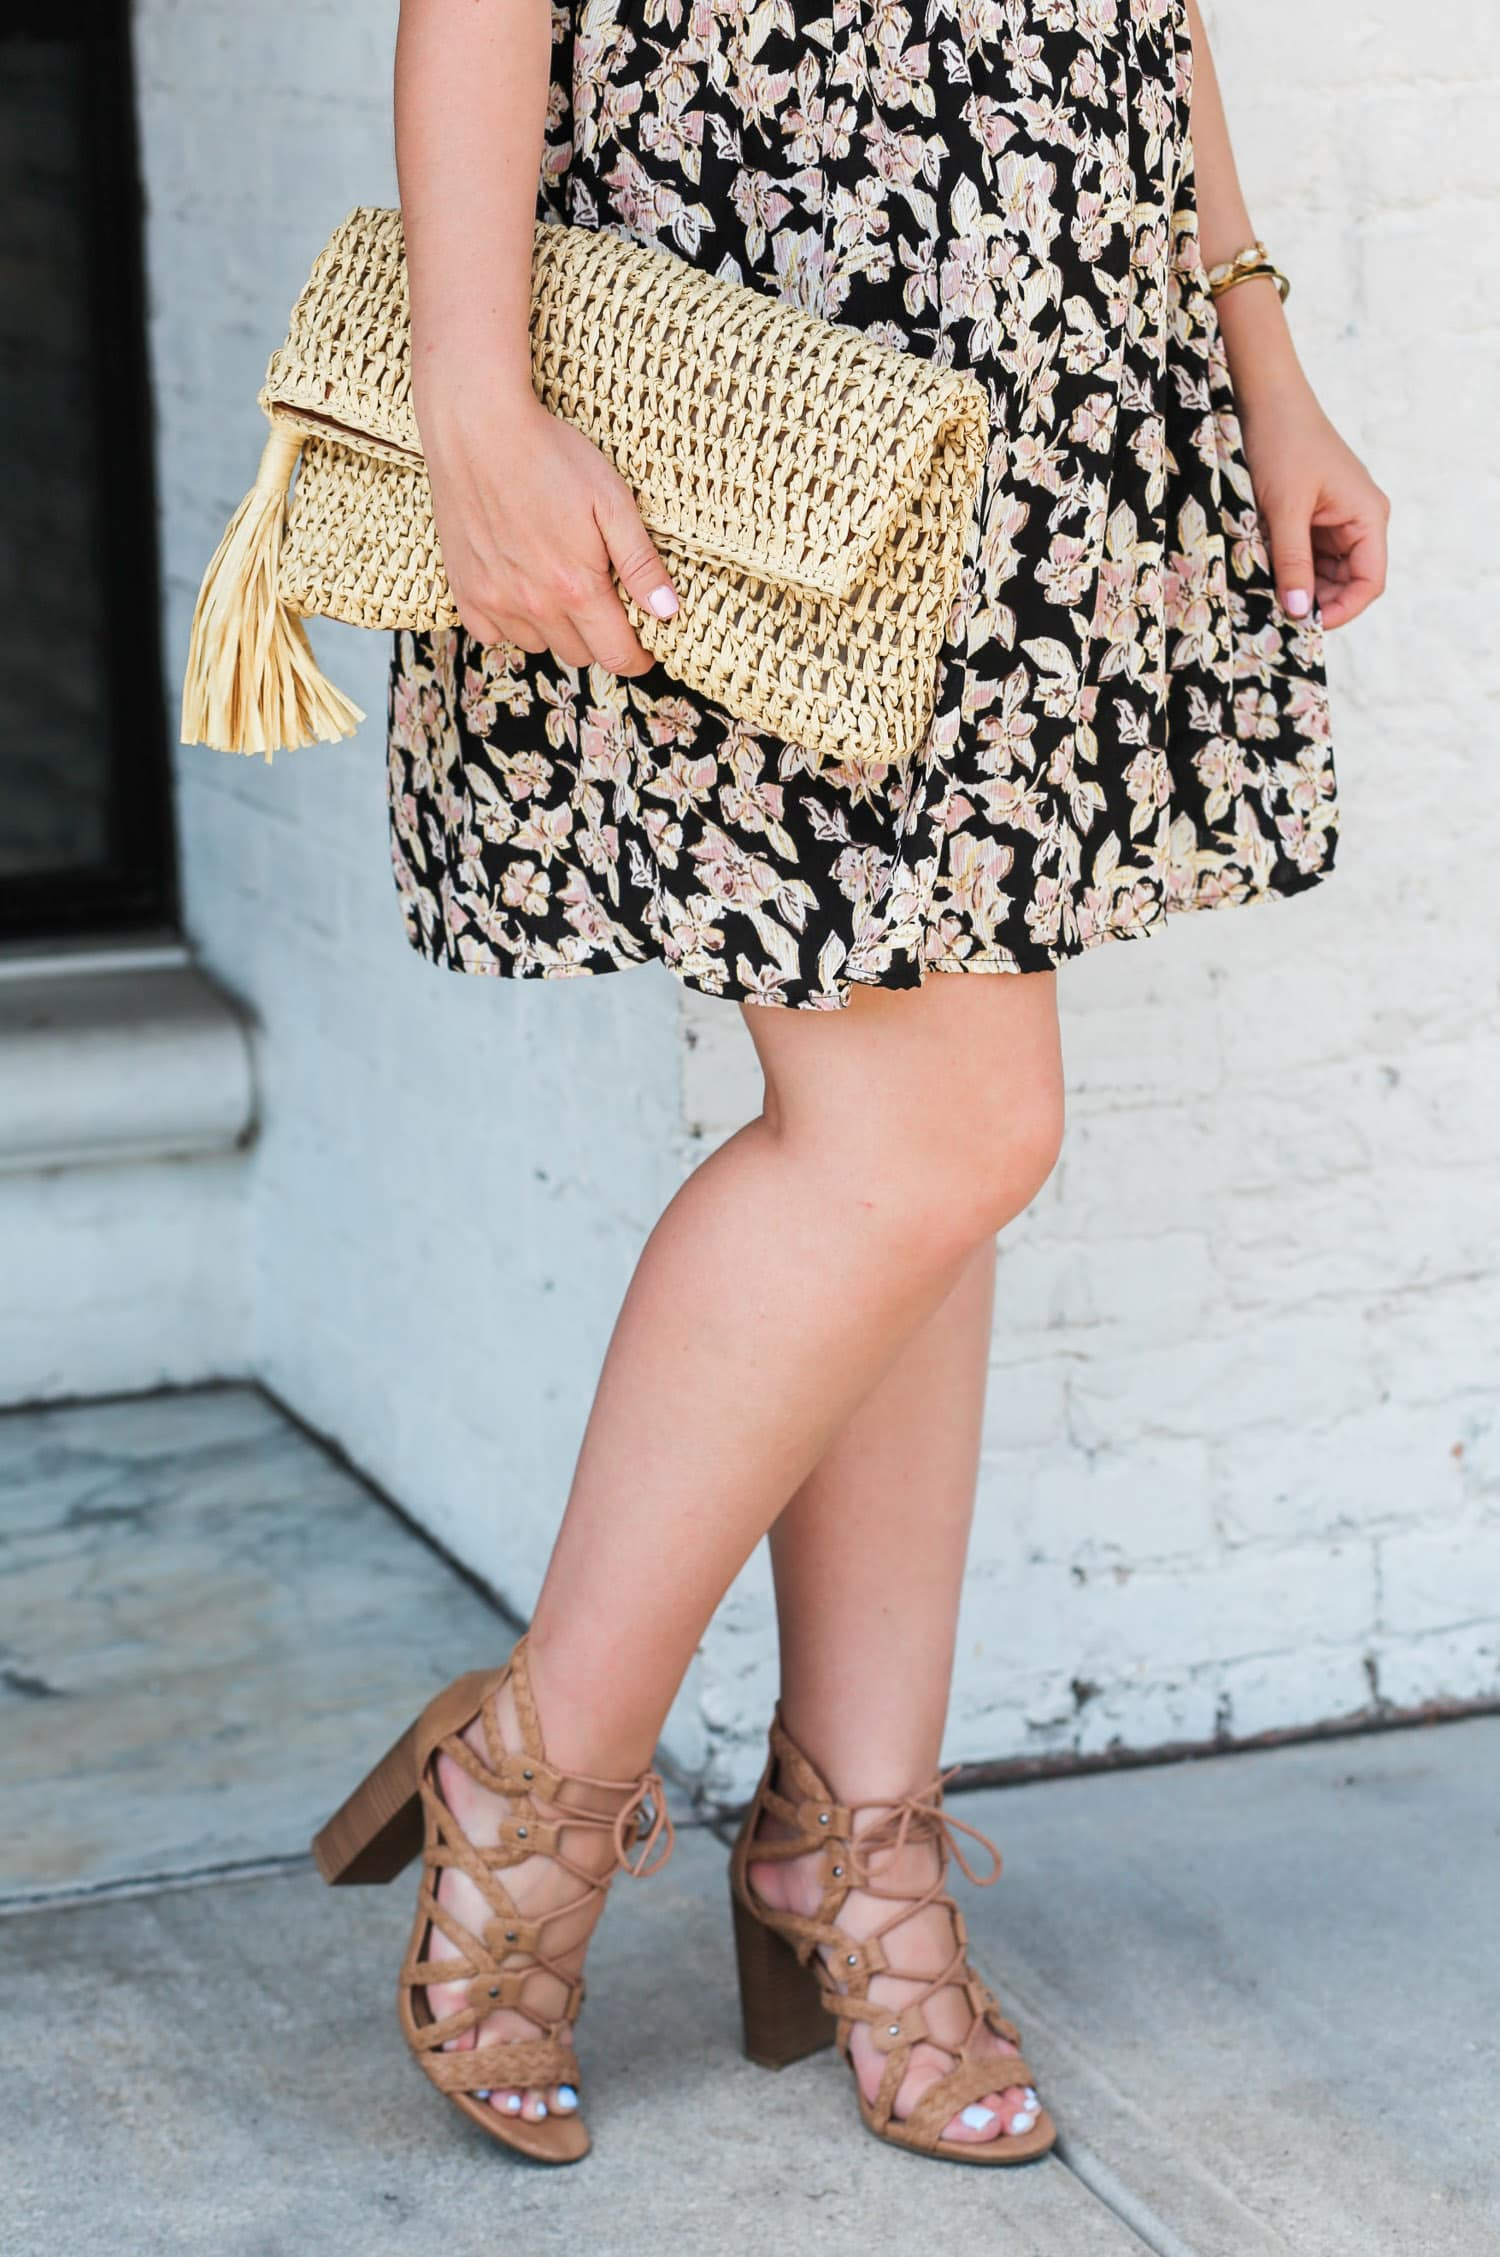 Loving these nude lace up sandals for summer! Can you believe these gorgeous nude gladiator heeled sandals are also under $25? Click through this pin to see this cute summer outfit idea styled by Orlando, Florida fashion blogger Ashley Brooke Nicholas! | Floral off the shoulder dress, straw clutch with tassel, raffia clutch, lace up sandals, lace up heels, cute summer heels, affordable outfit ideas, fashion blogger outfits, feminine style